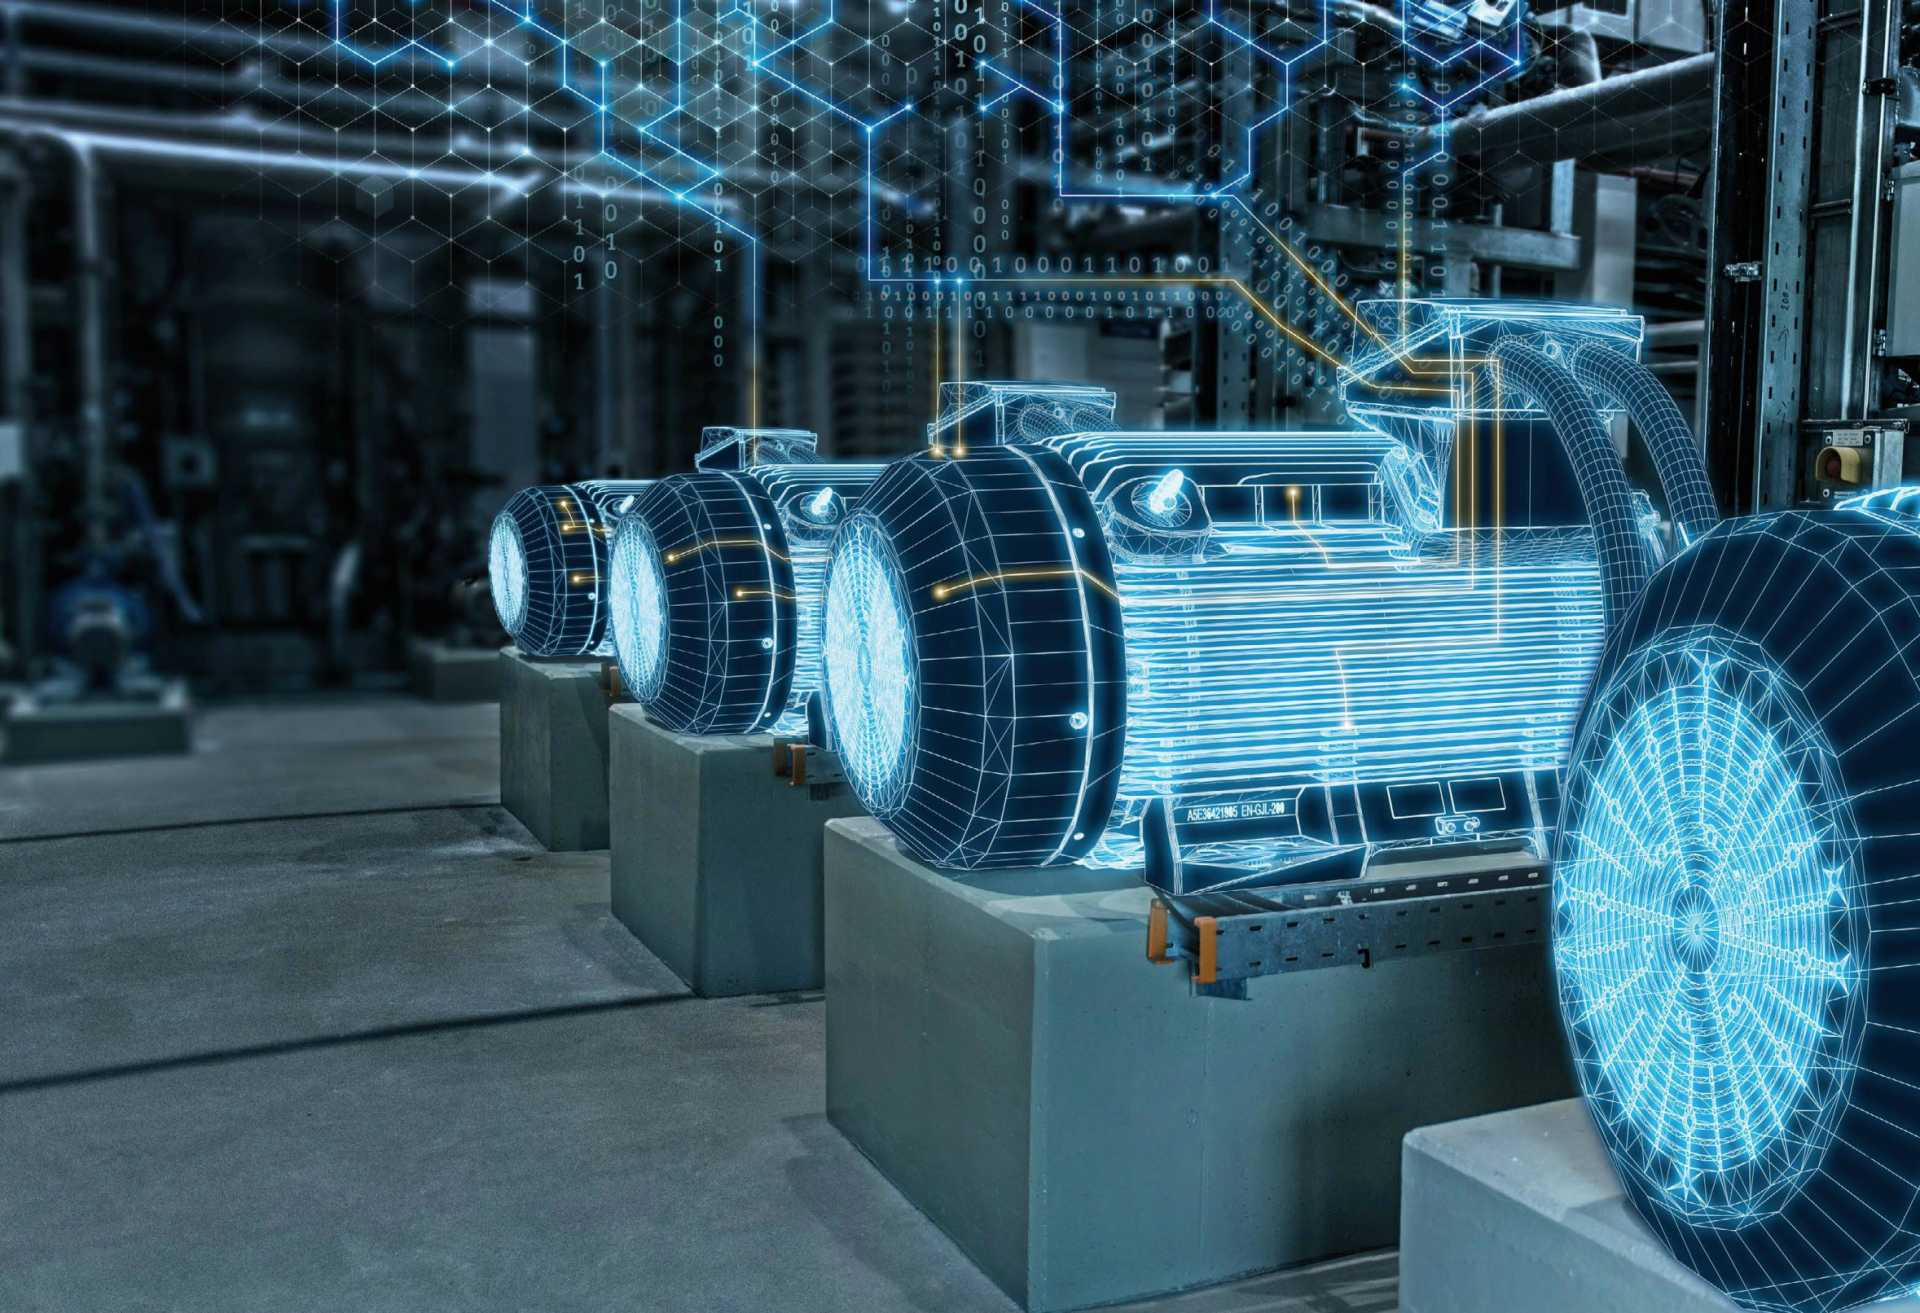 Industrial IoT - IIoT - Siemens' 'Mindsphere' IoT operating system can use digital twins to help optimise product development, production management and in-service performance – image courtesy of Siemens.